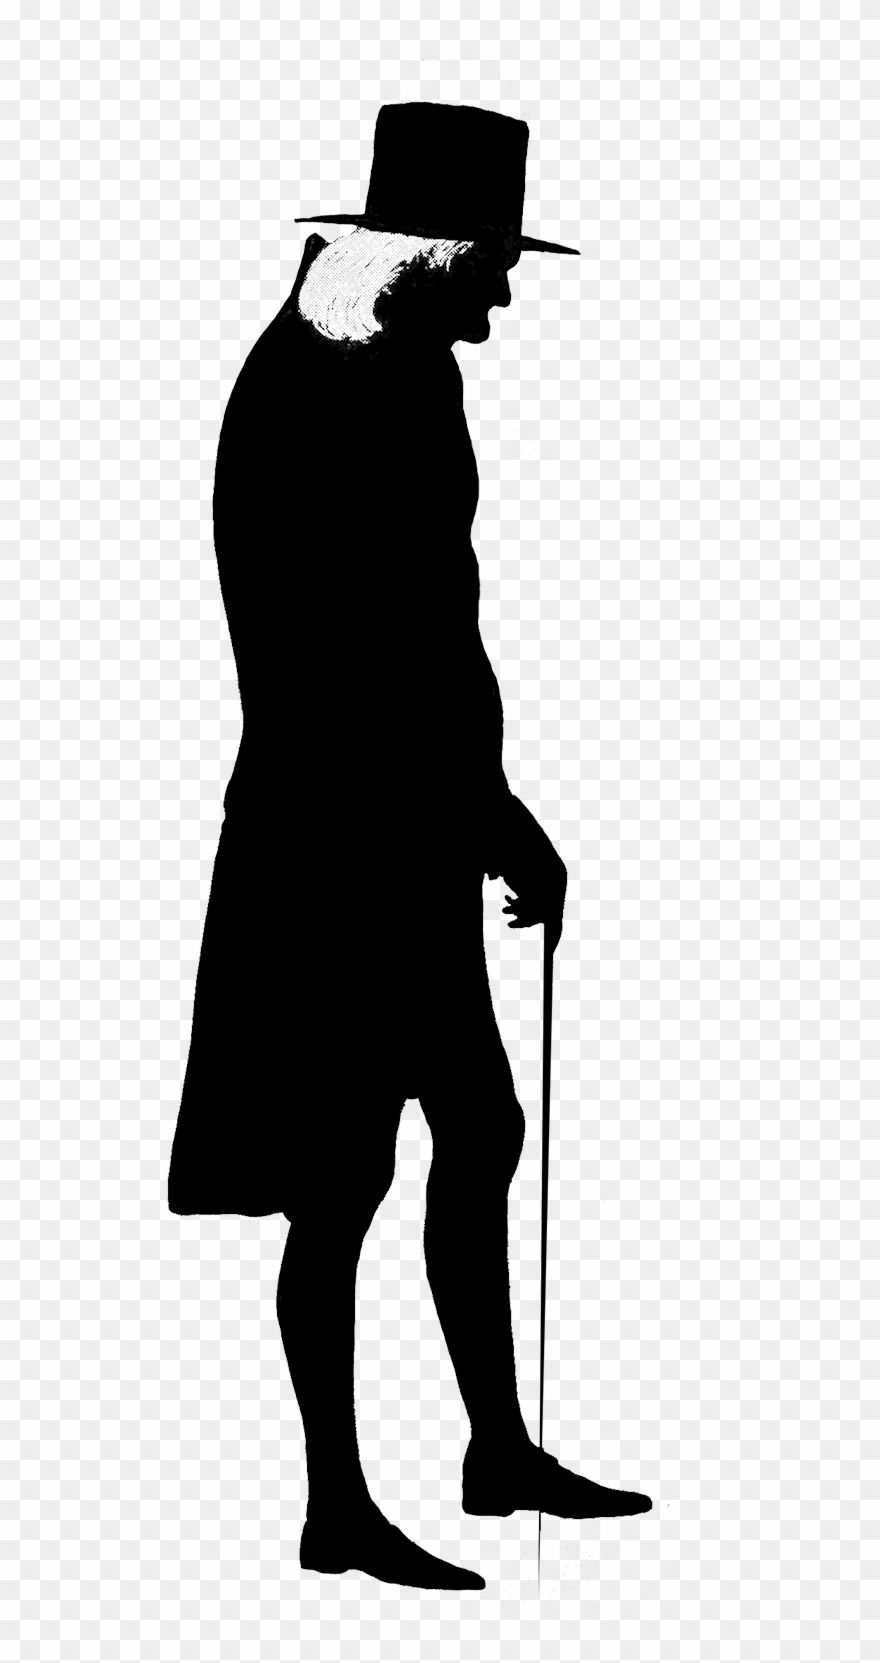 hight resolution of silhouette man old transparent silhouette man clipart